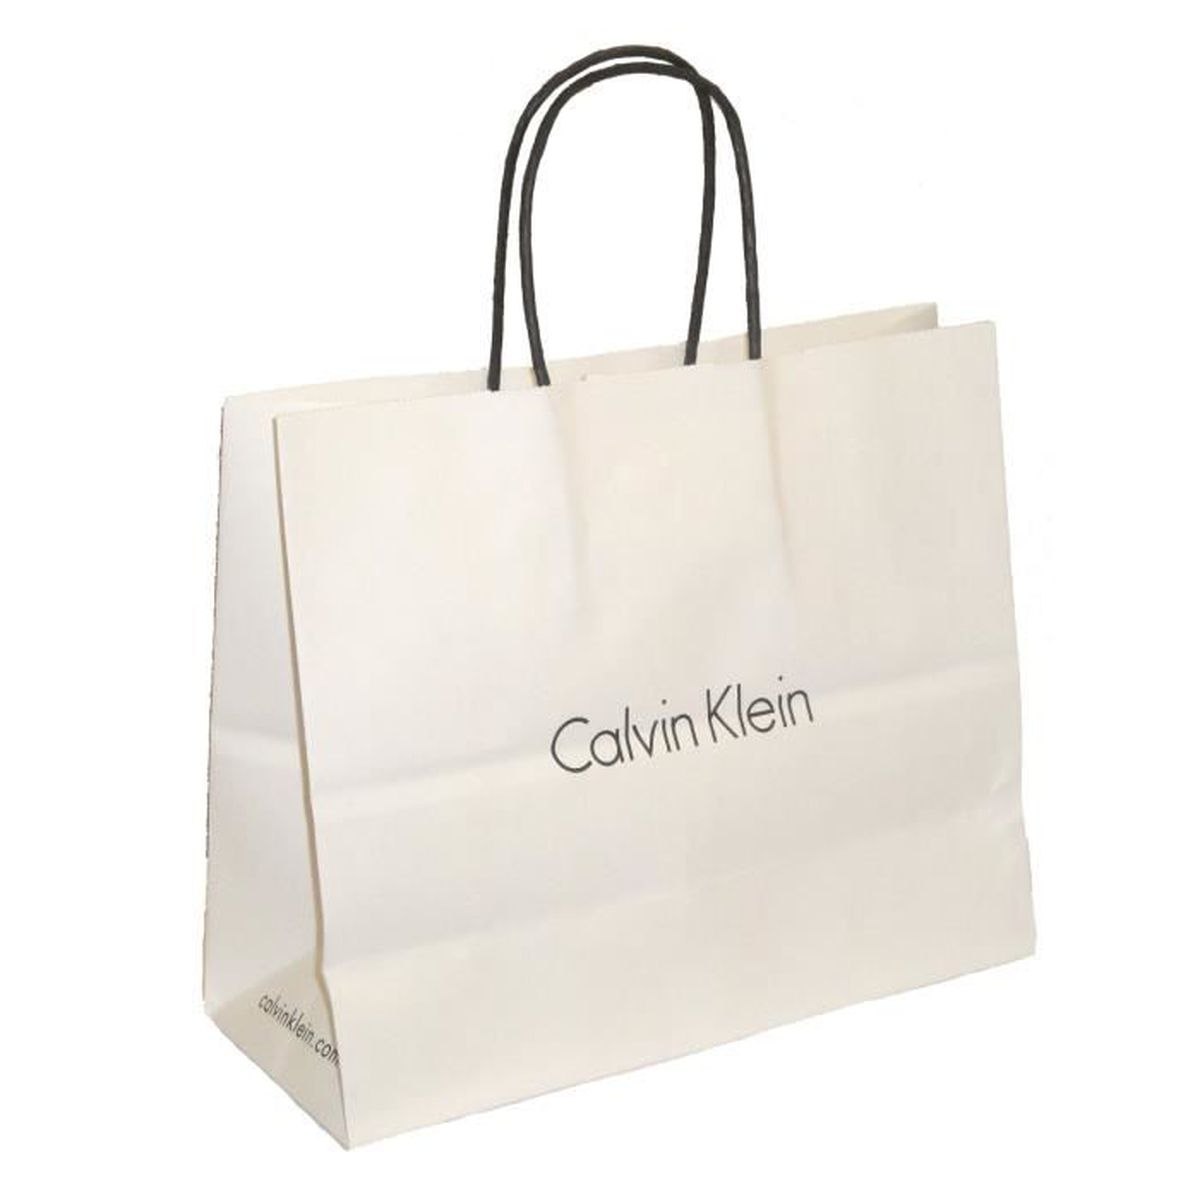 sac calvin klein en papier pour vos cadeaux calvin klein blanc achat vente sac shopping. Black Bedroom Furniture Sets. Home Design Ideas